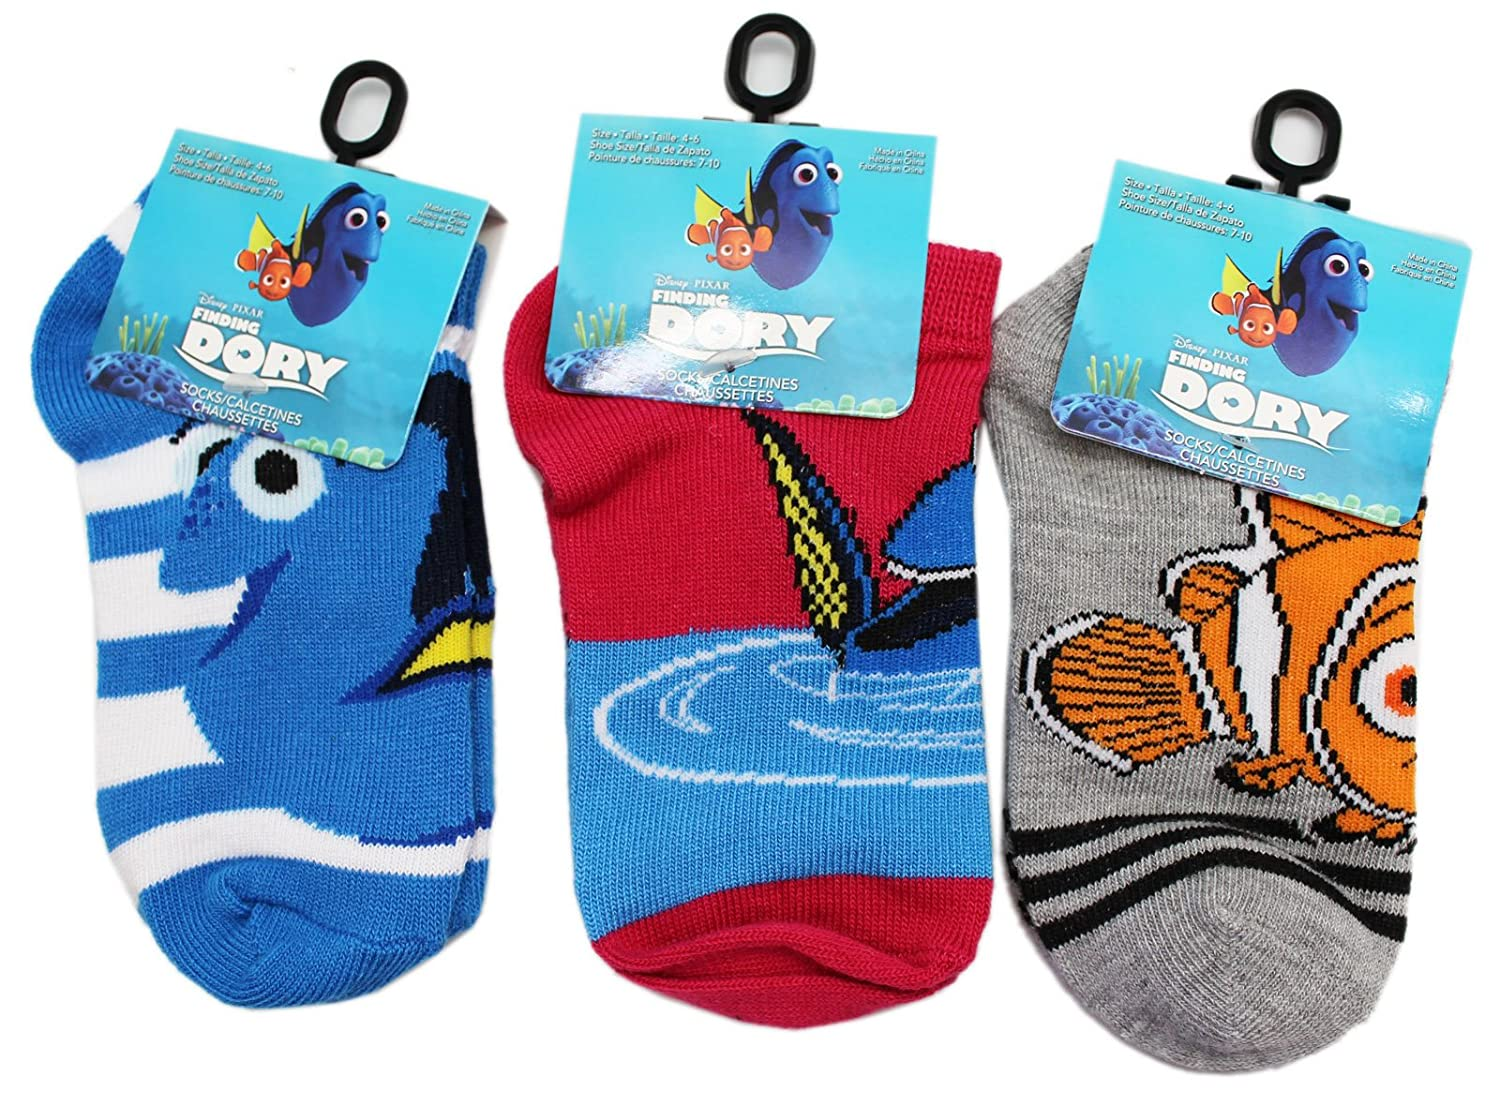 Amazon.com: Disney Pixars Finding Dory Assorted Kids Sock Collection (Sock Size 6-8.5, 3 Pairs): Clothing